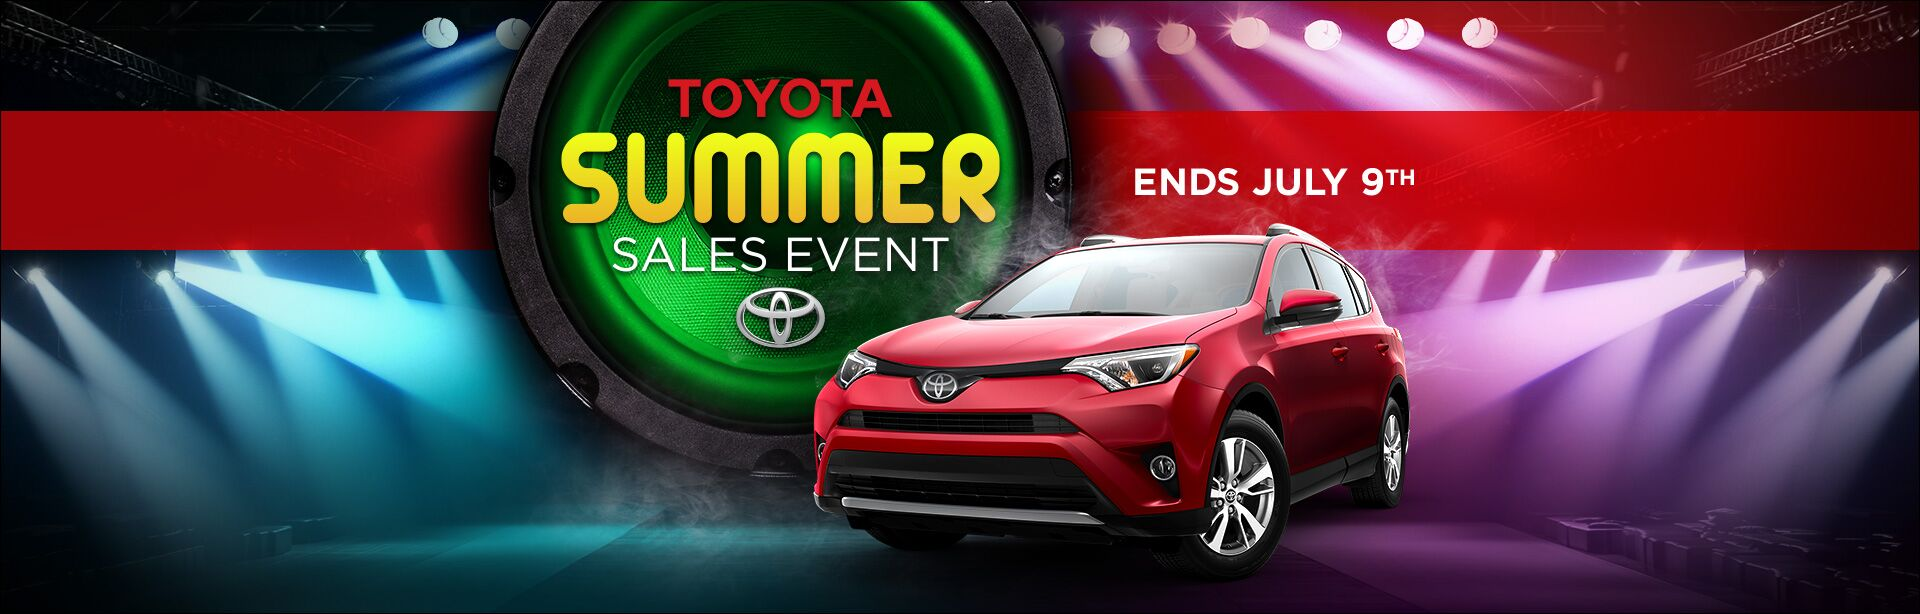 Summer Sales Event 2018